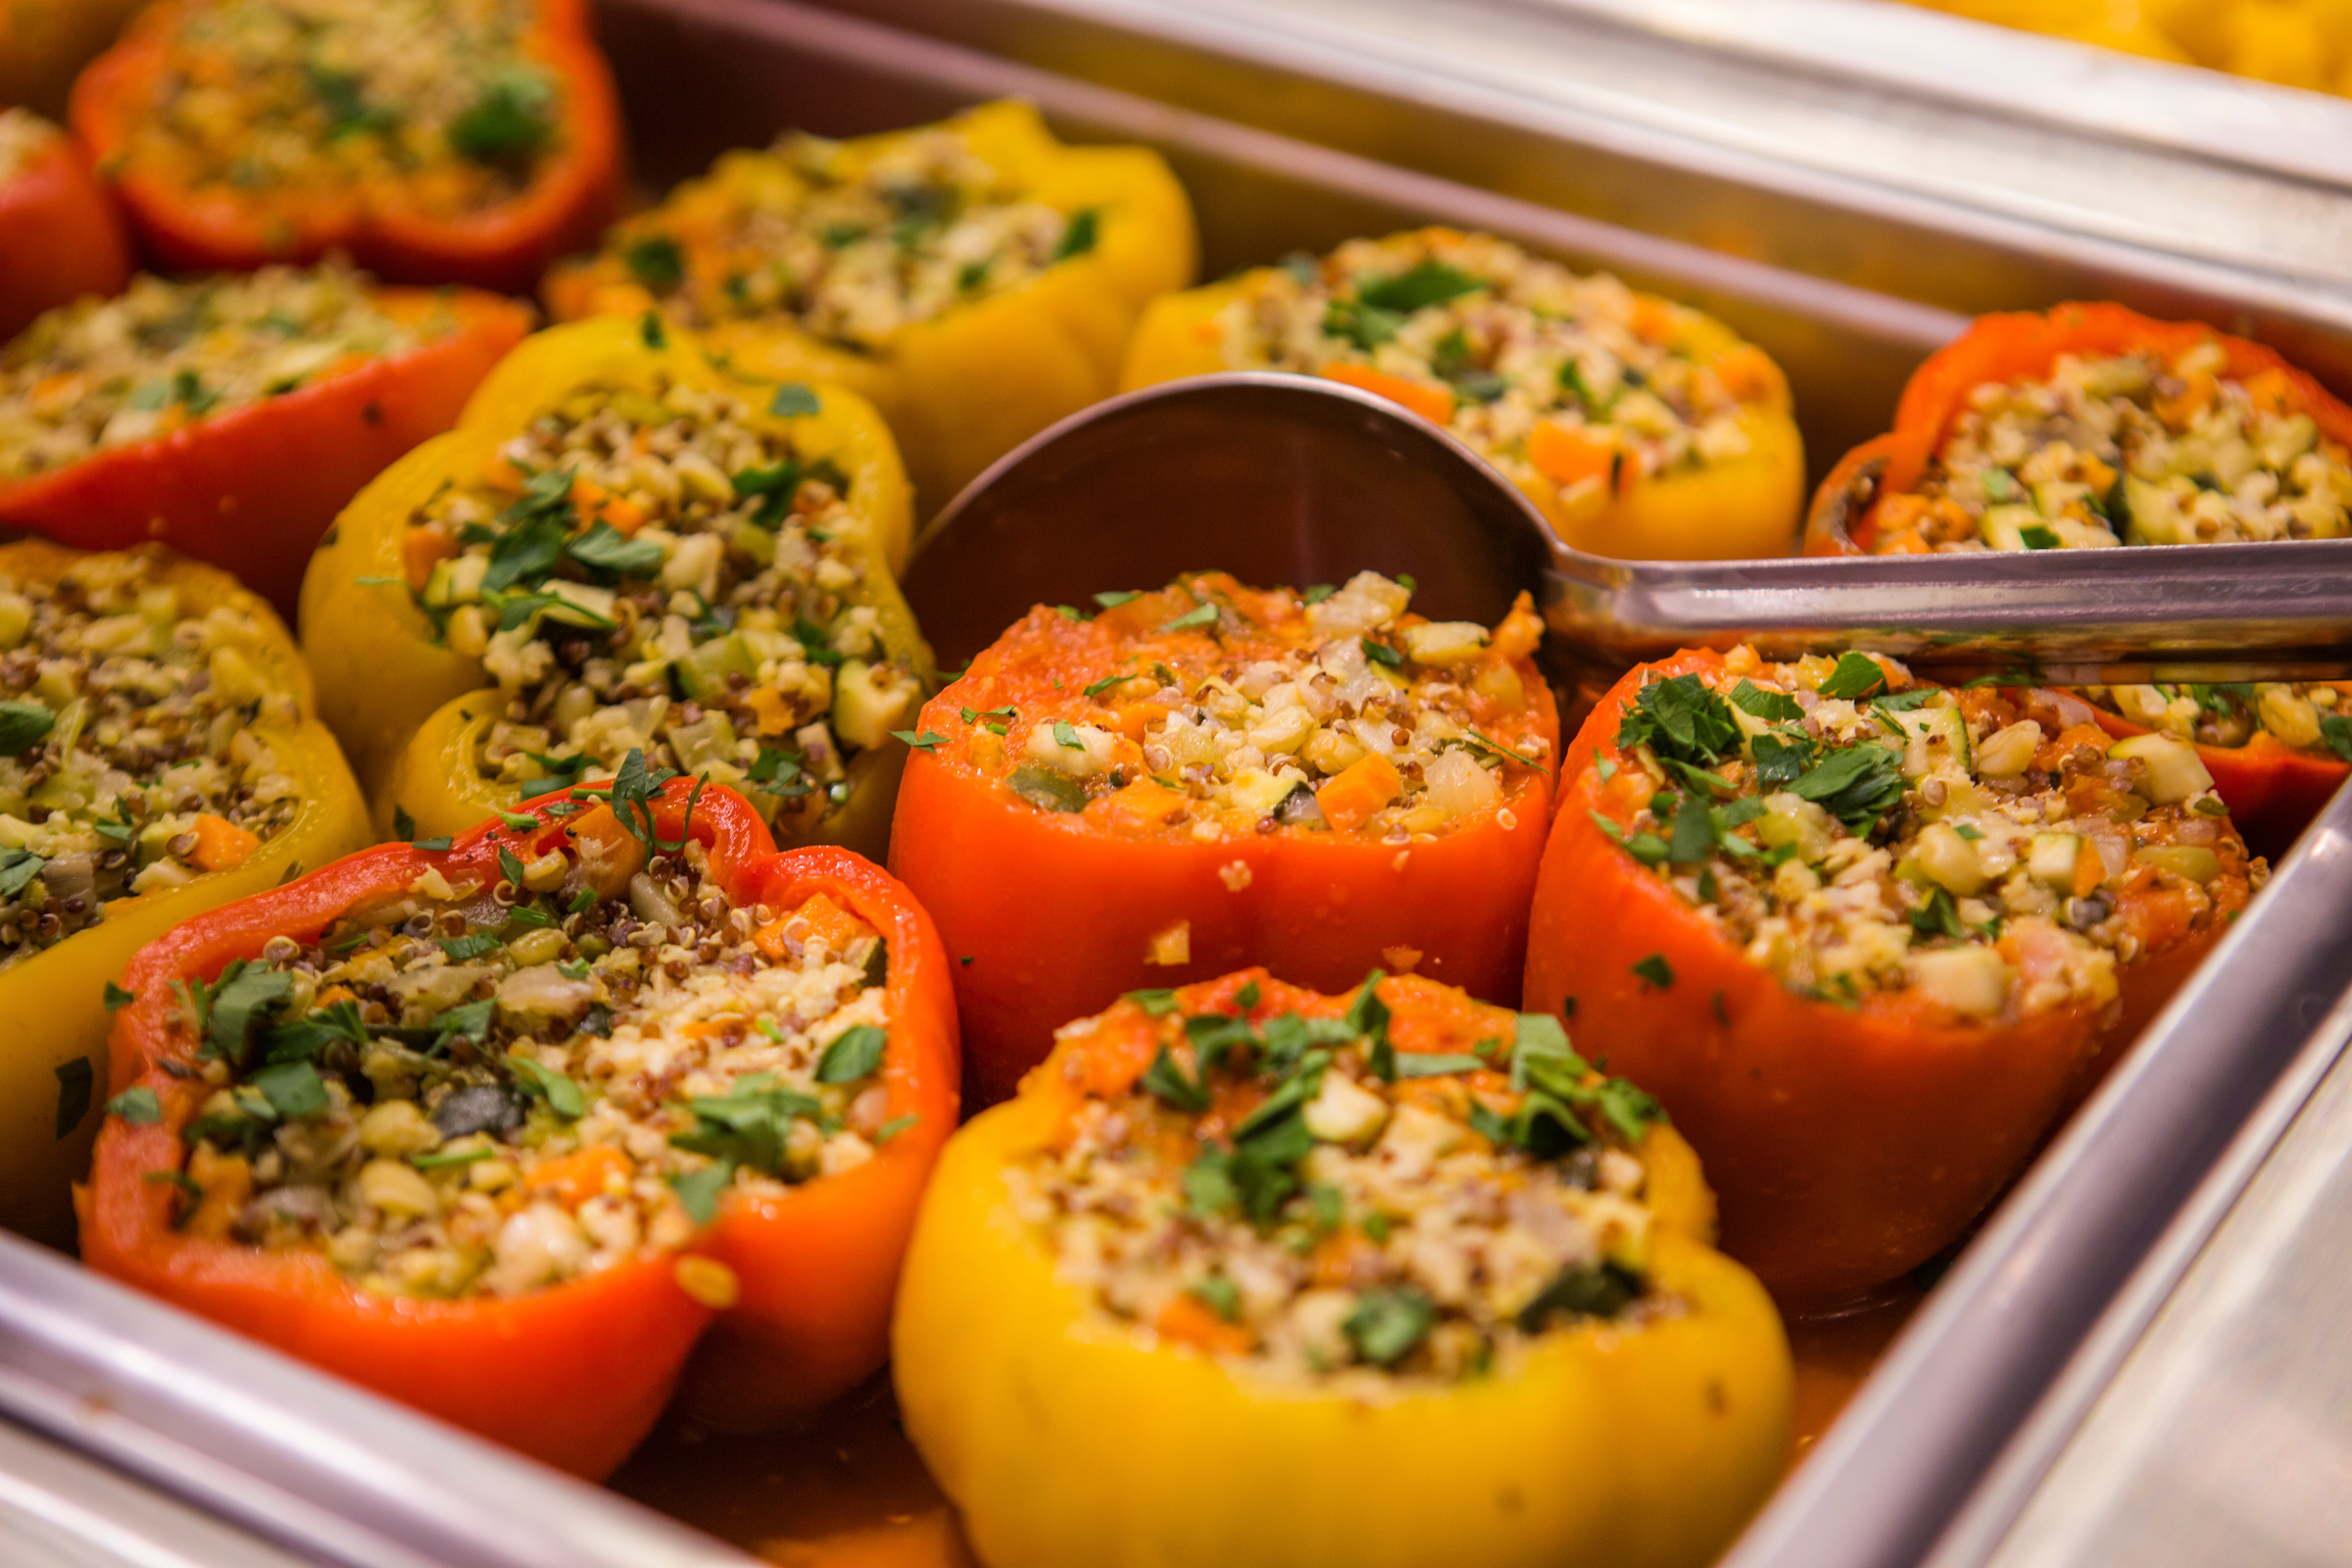 Stuffed Peppers from the hot bar at Beatrix Market